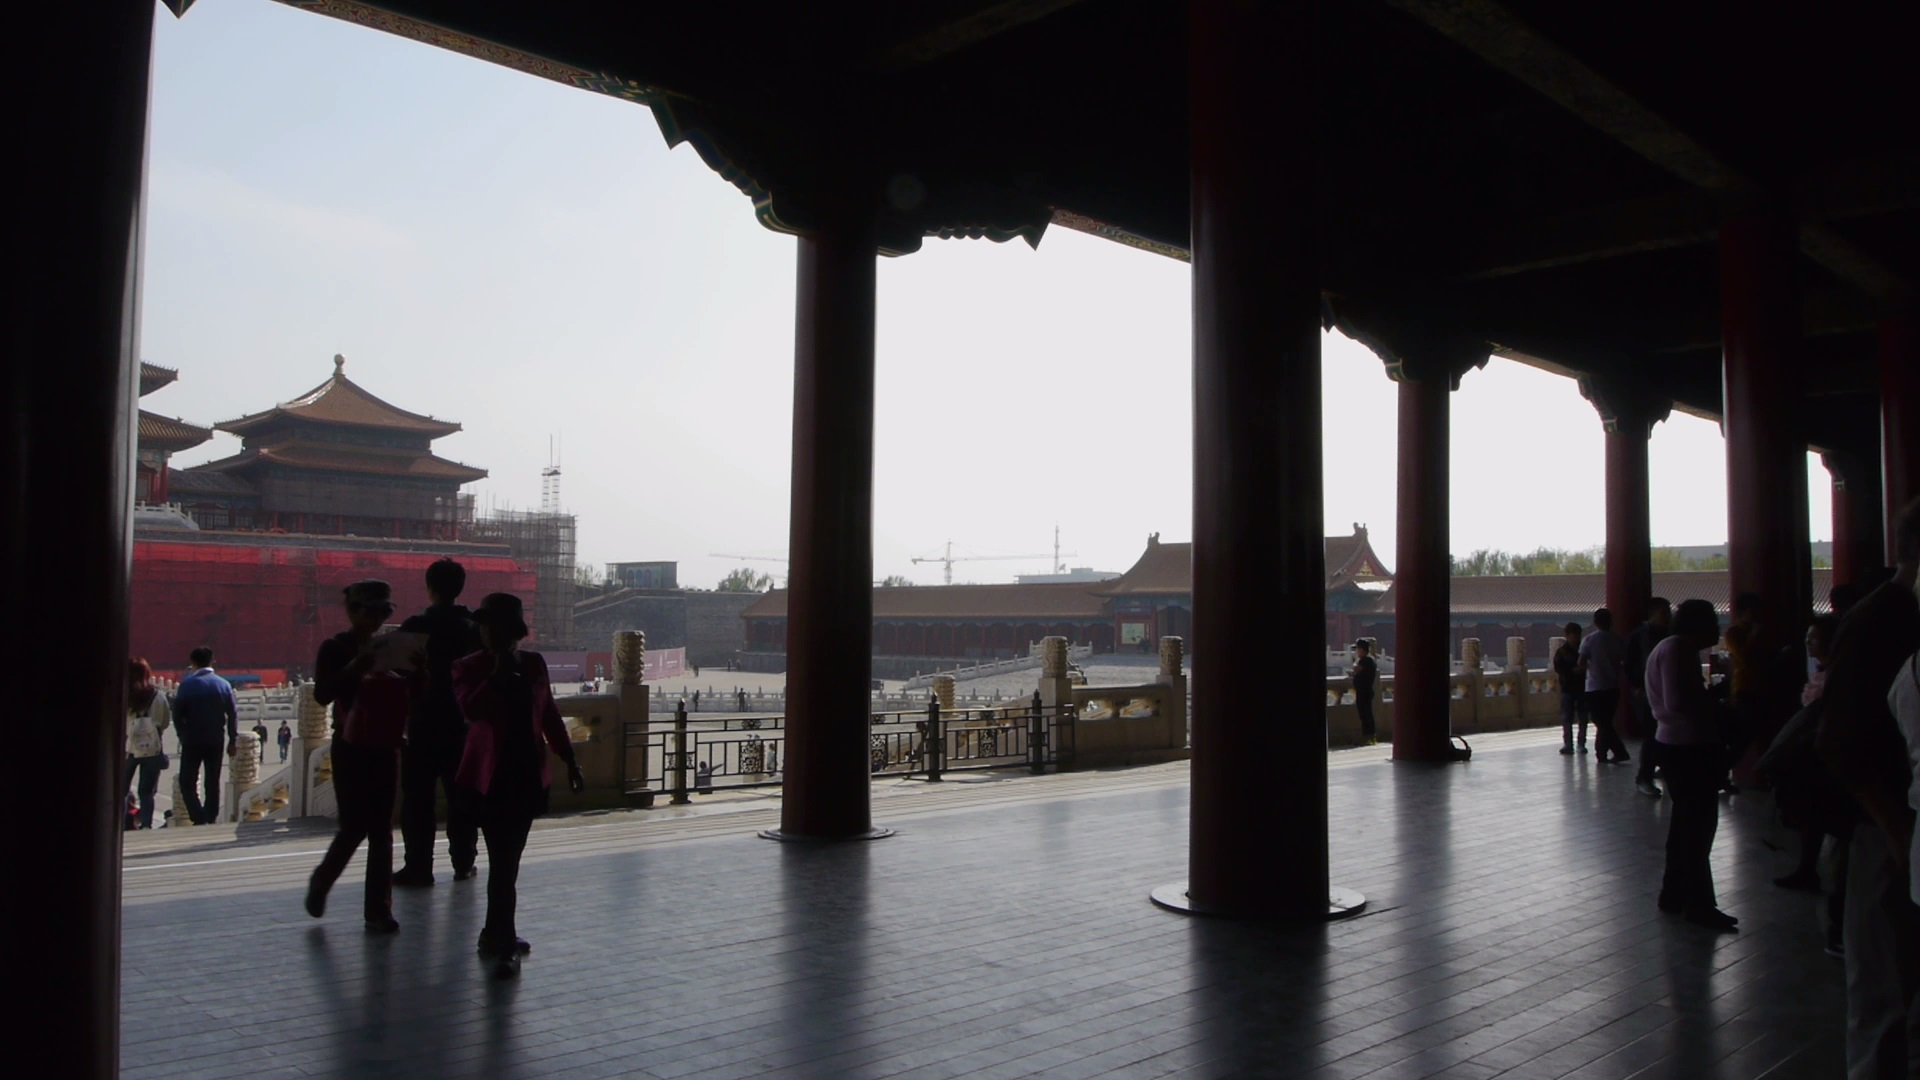 Through the Gates of the Forbidden City